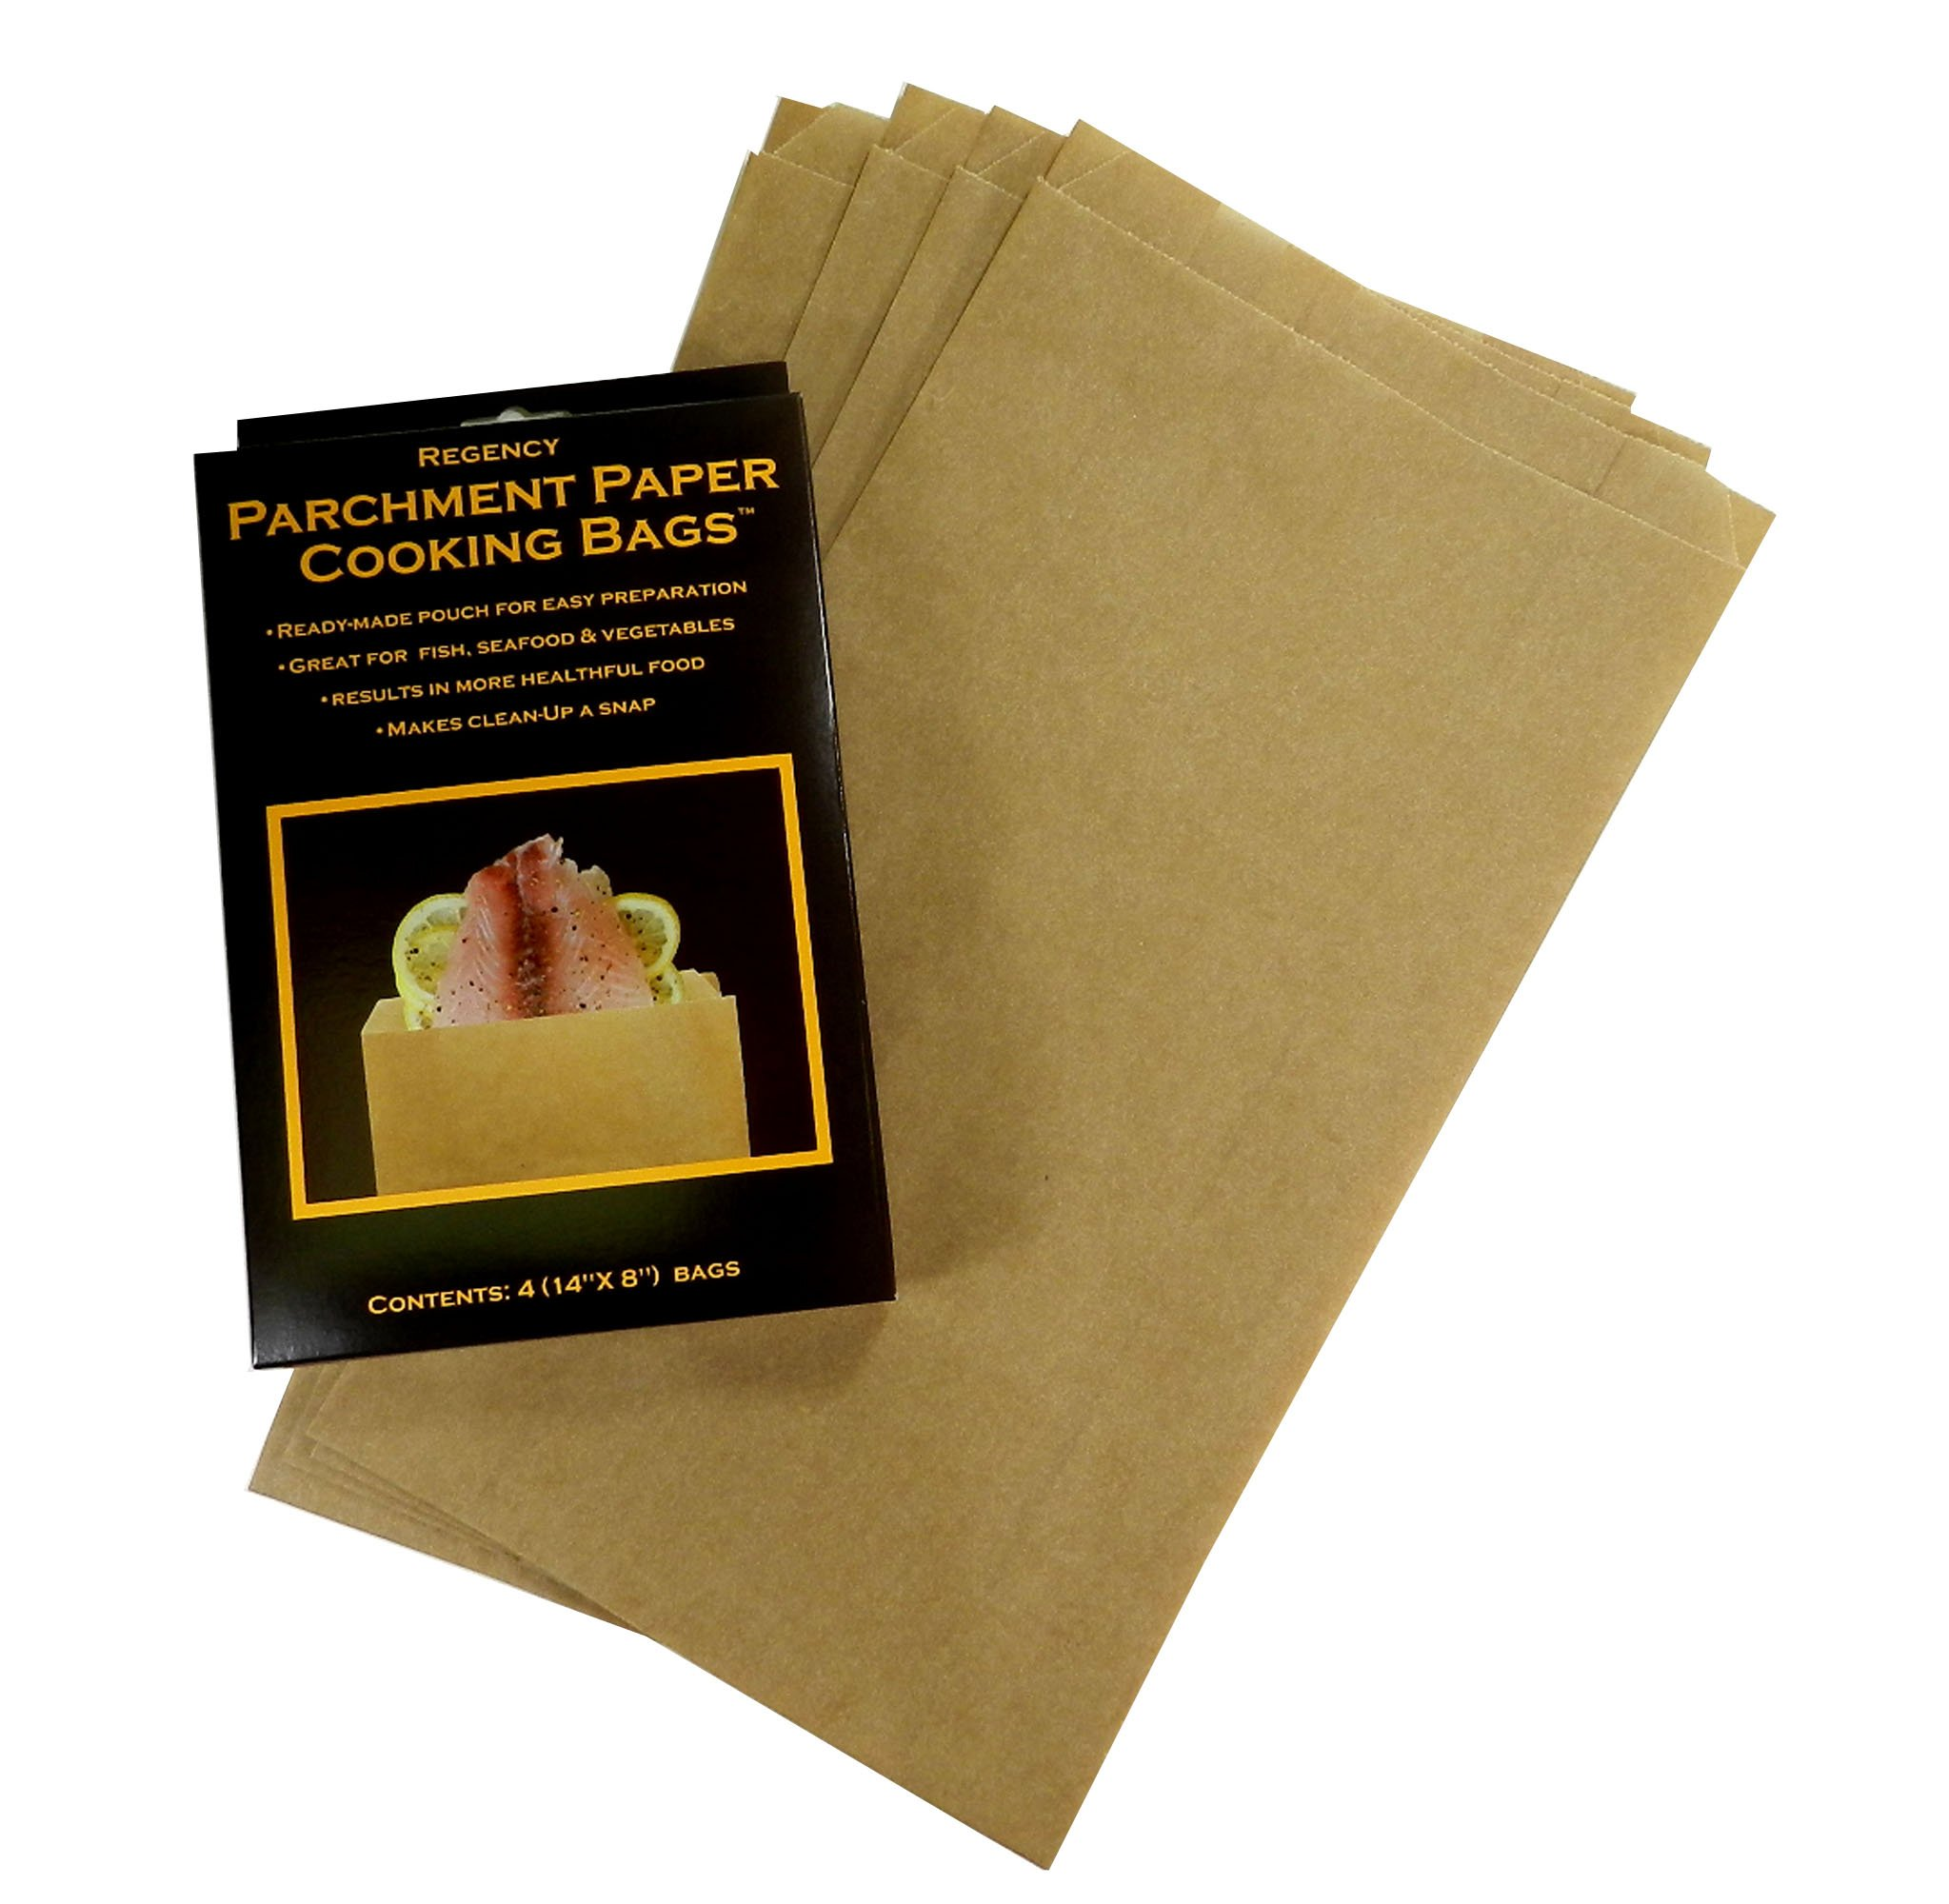 Regency Wraps RW1142 Parchment Paper Cooking Bags For Cooking & Papillote, Set of 4